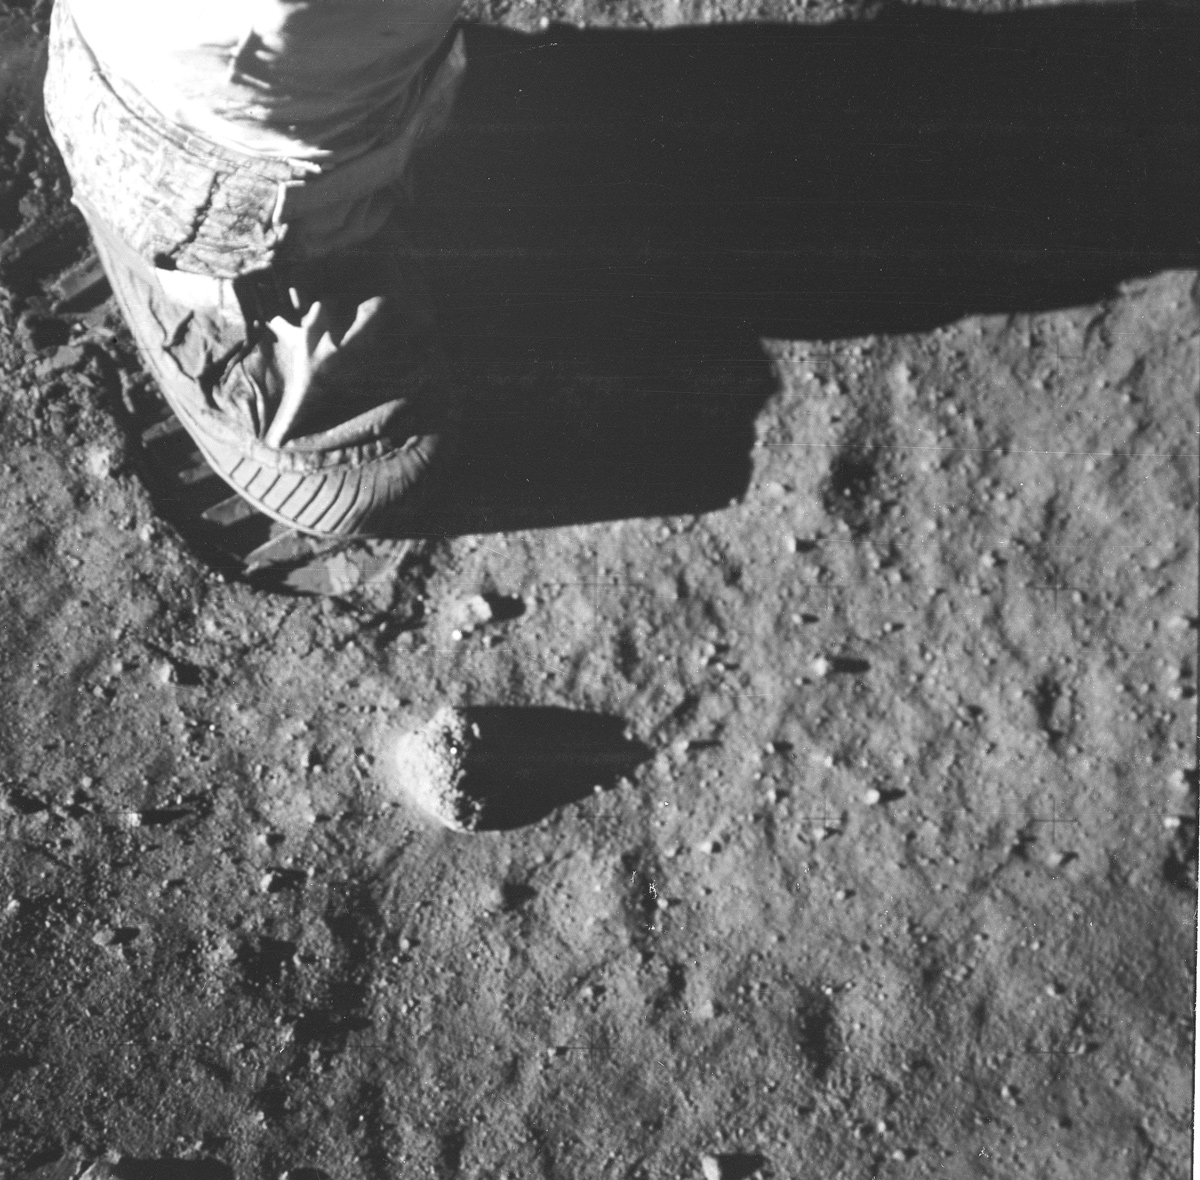 Astronaut's foot and footprint on lunar soil